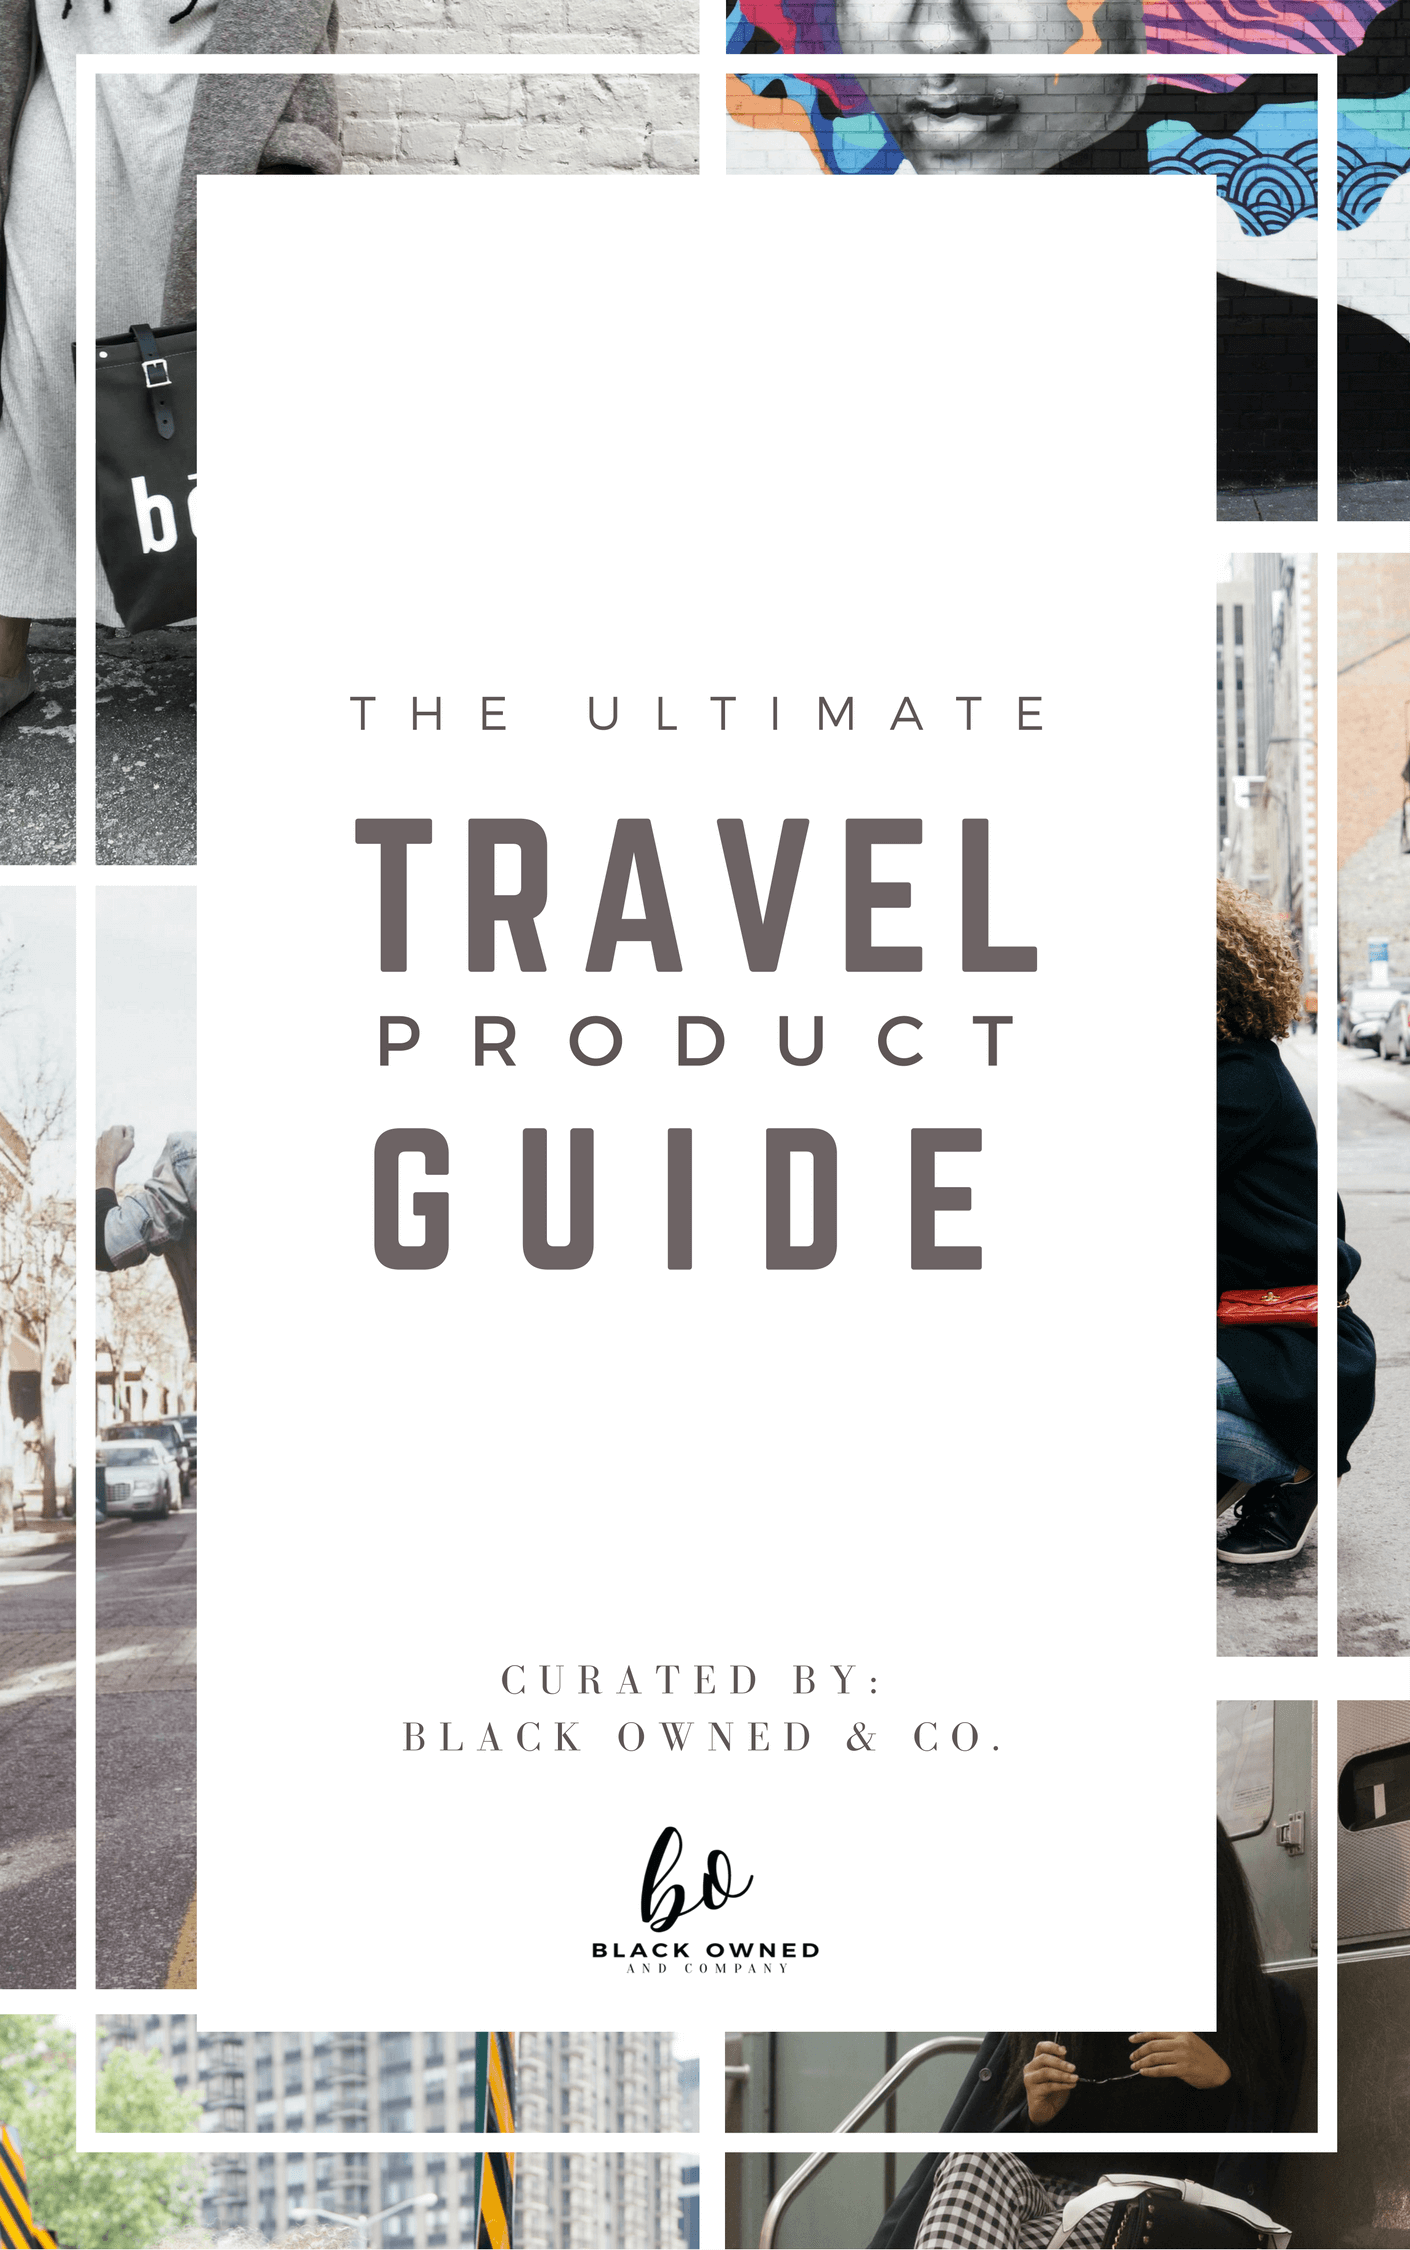 Black Owned & Co. Ultimate Travel Guide features Black Owned Businesses